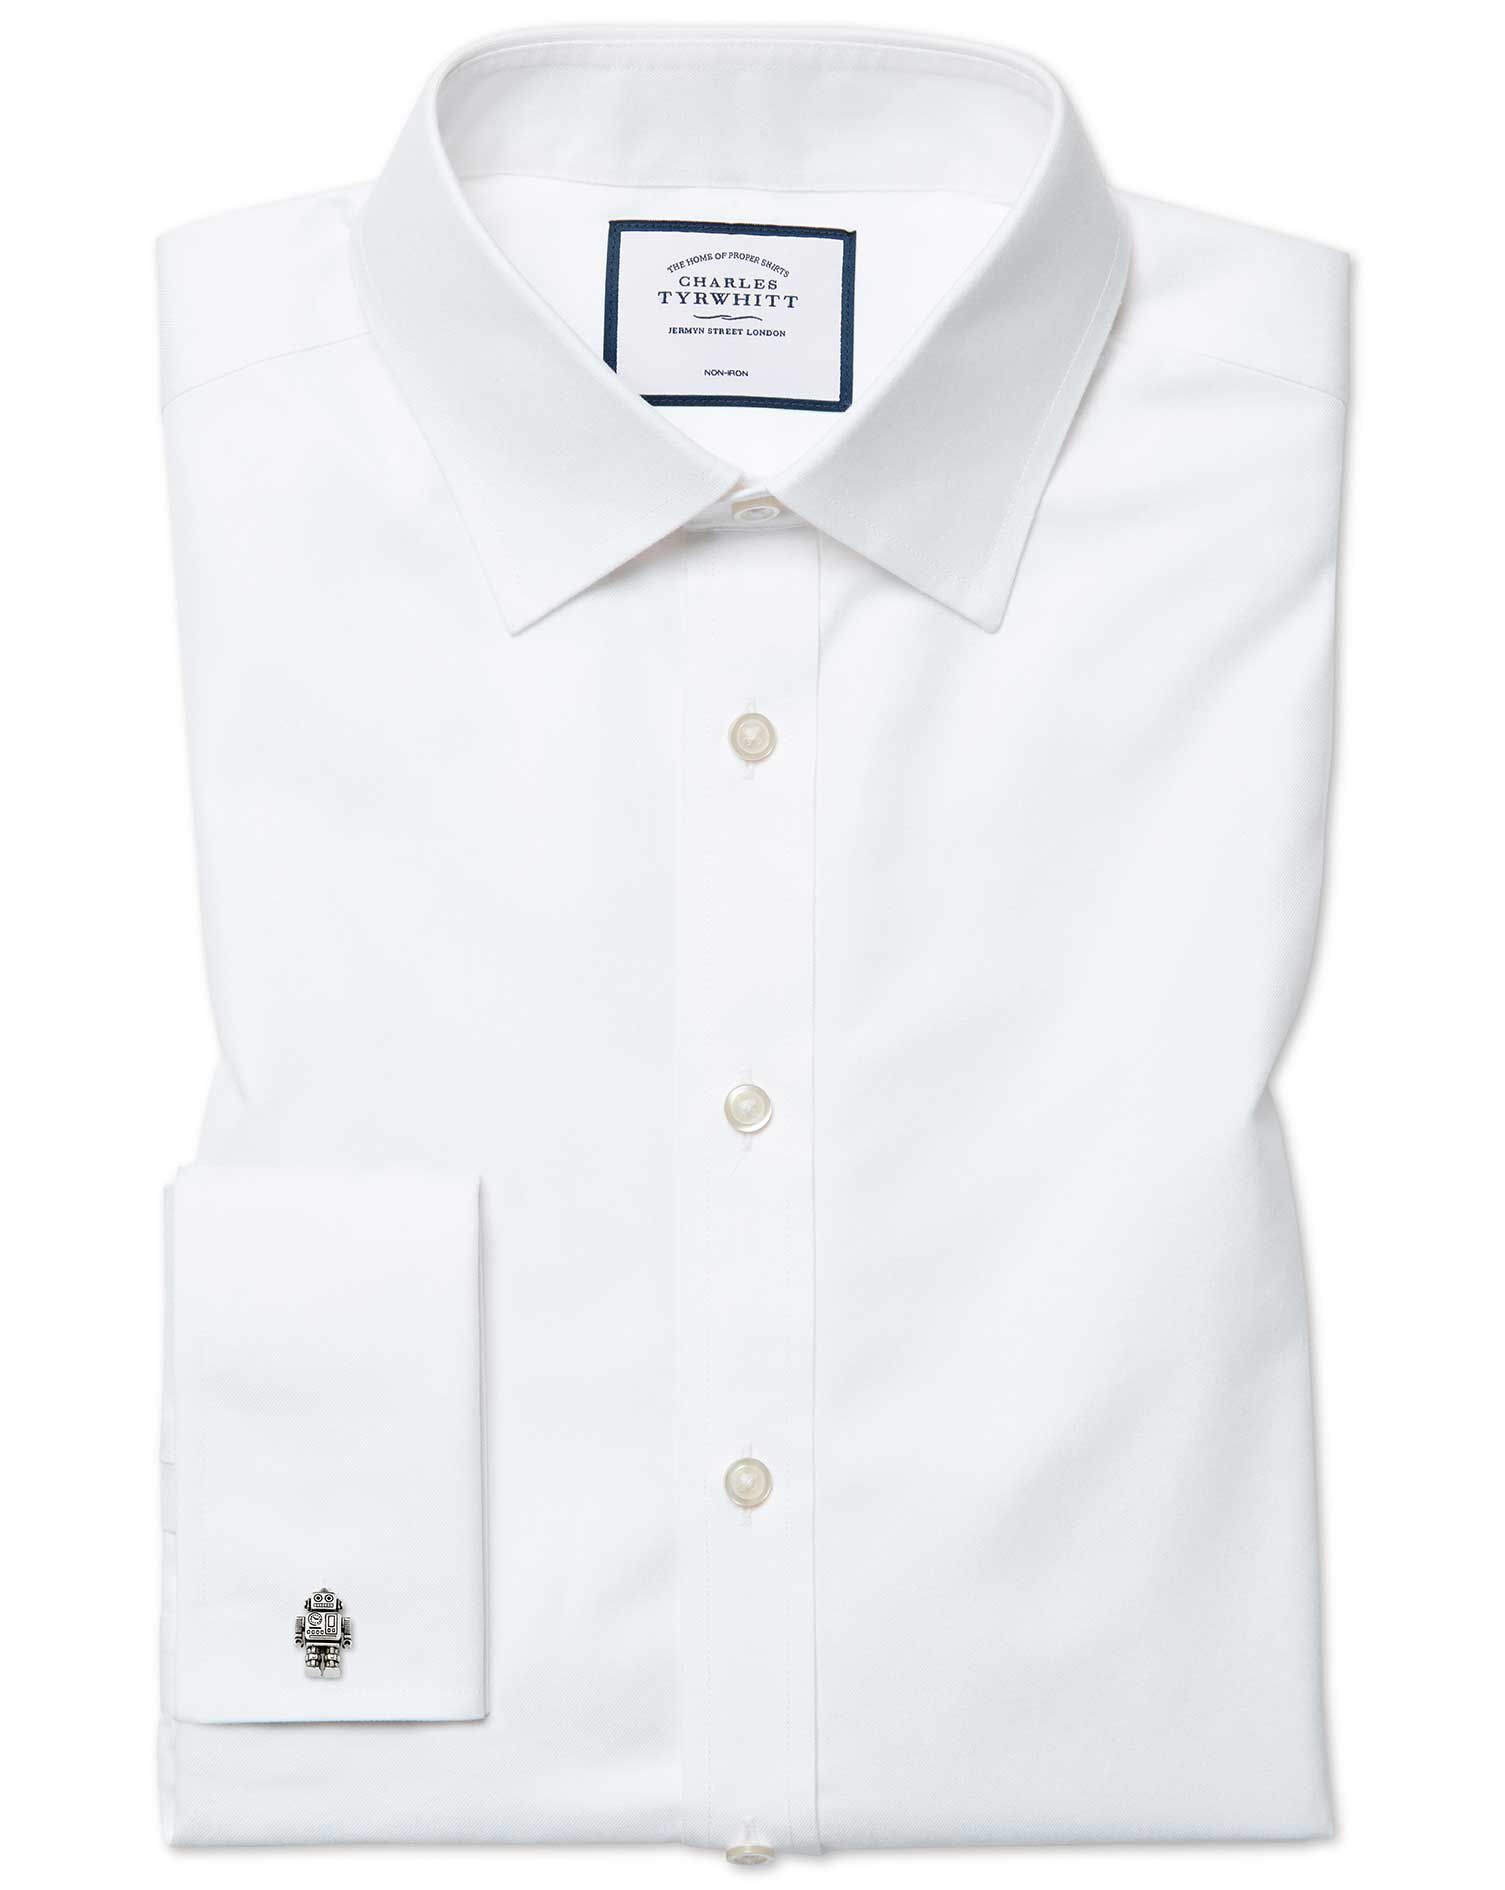 Slim Fit Cutaway Non-Iron Twill White Cotton Formal Shirt Single Cuff Size 15/34 by Charles Tyrwhitt